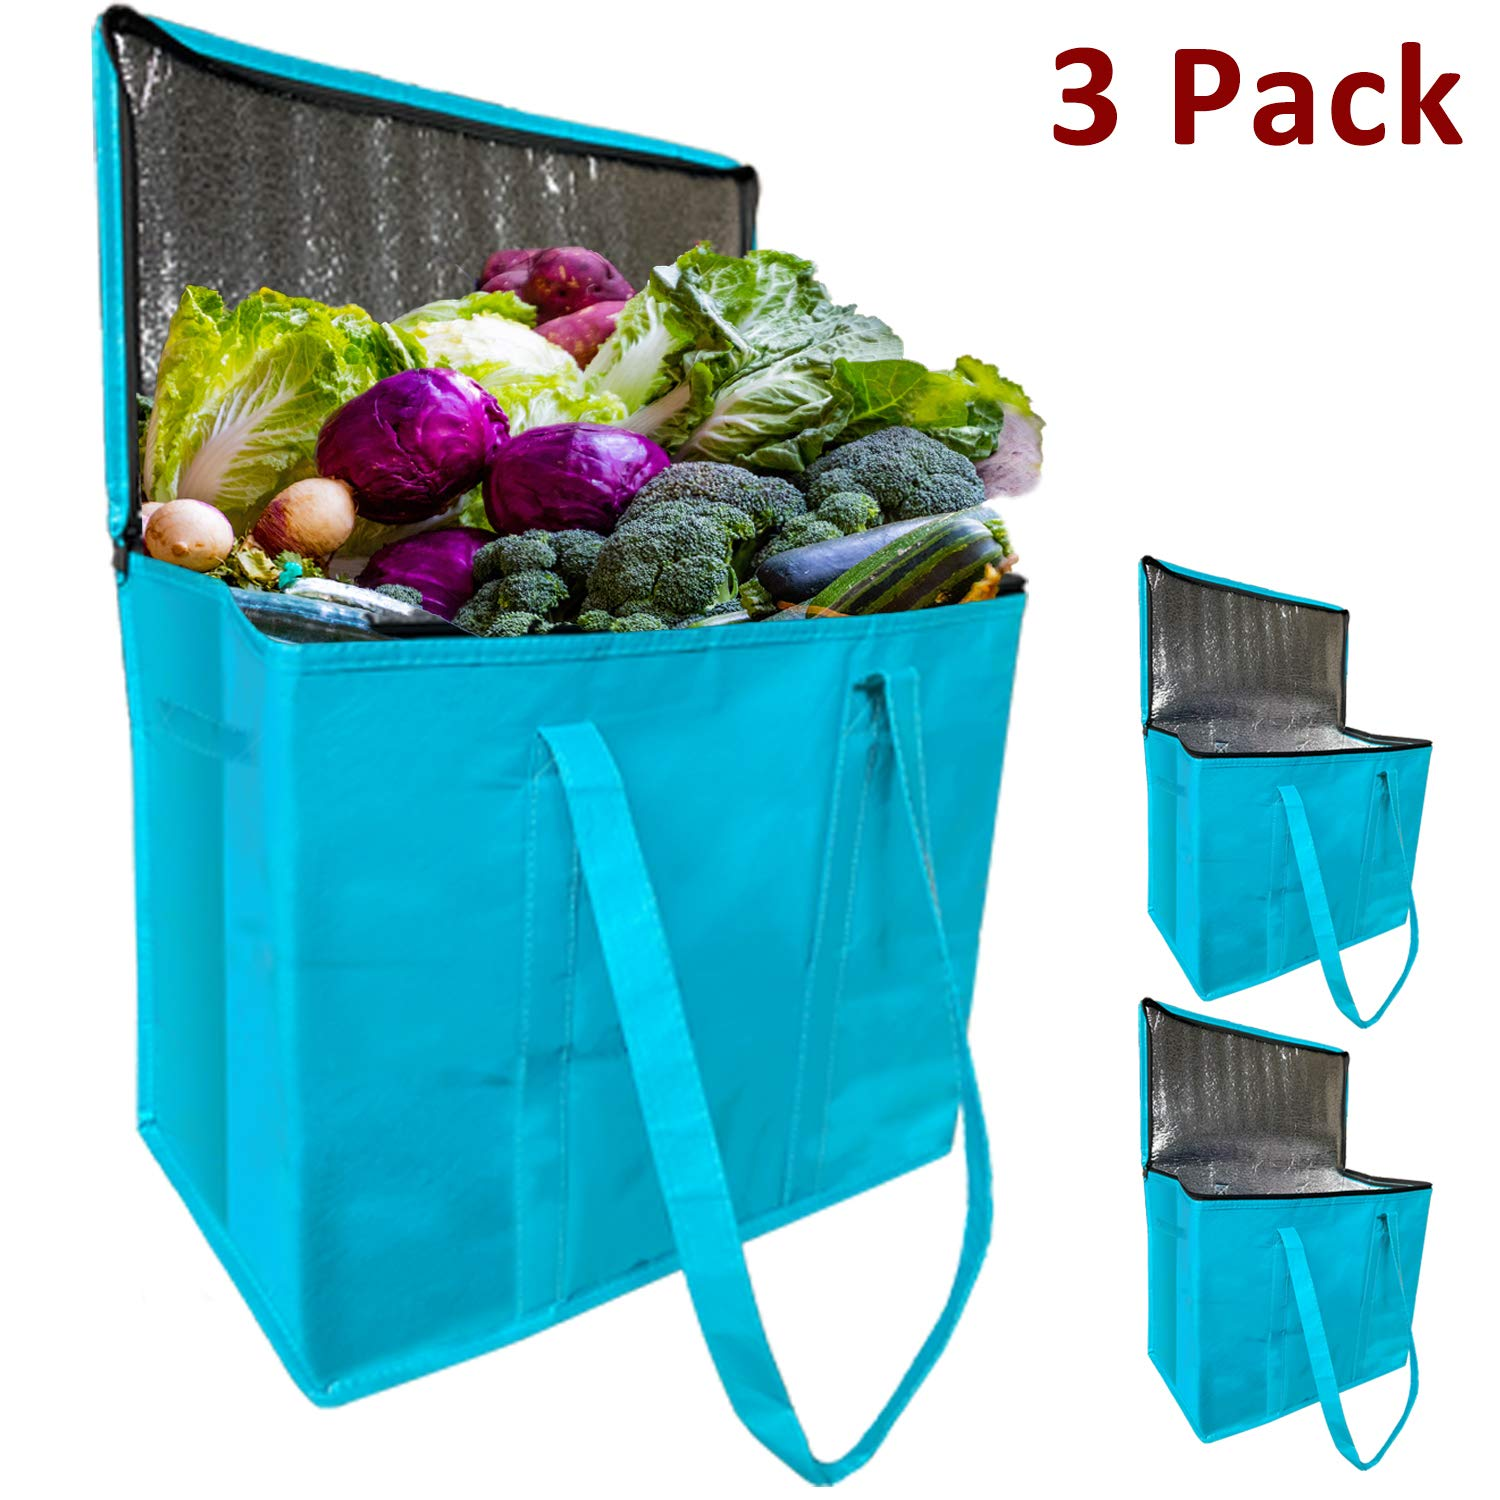 JALOUSIE 3 Pack XL Insulated Reusable Grocery Shopping Bags - Extra Large Water-resistant Surface Picnic Cooler Bag Zipper Bag - Reinforced Bottom and Handles